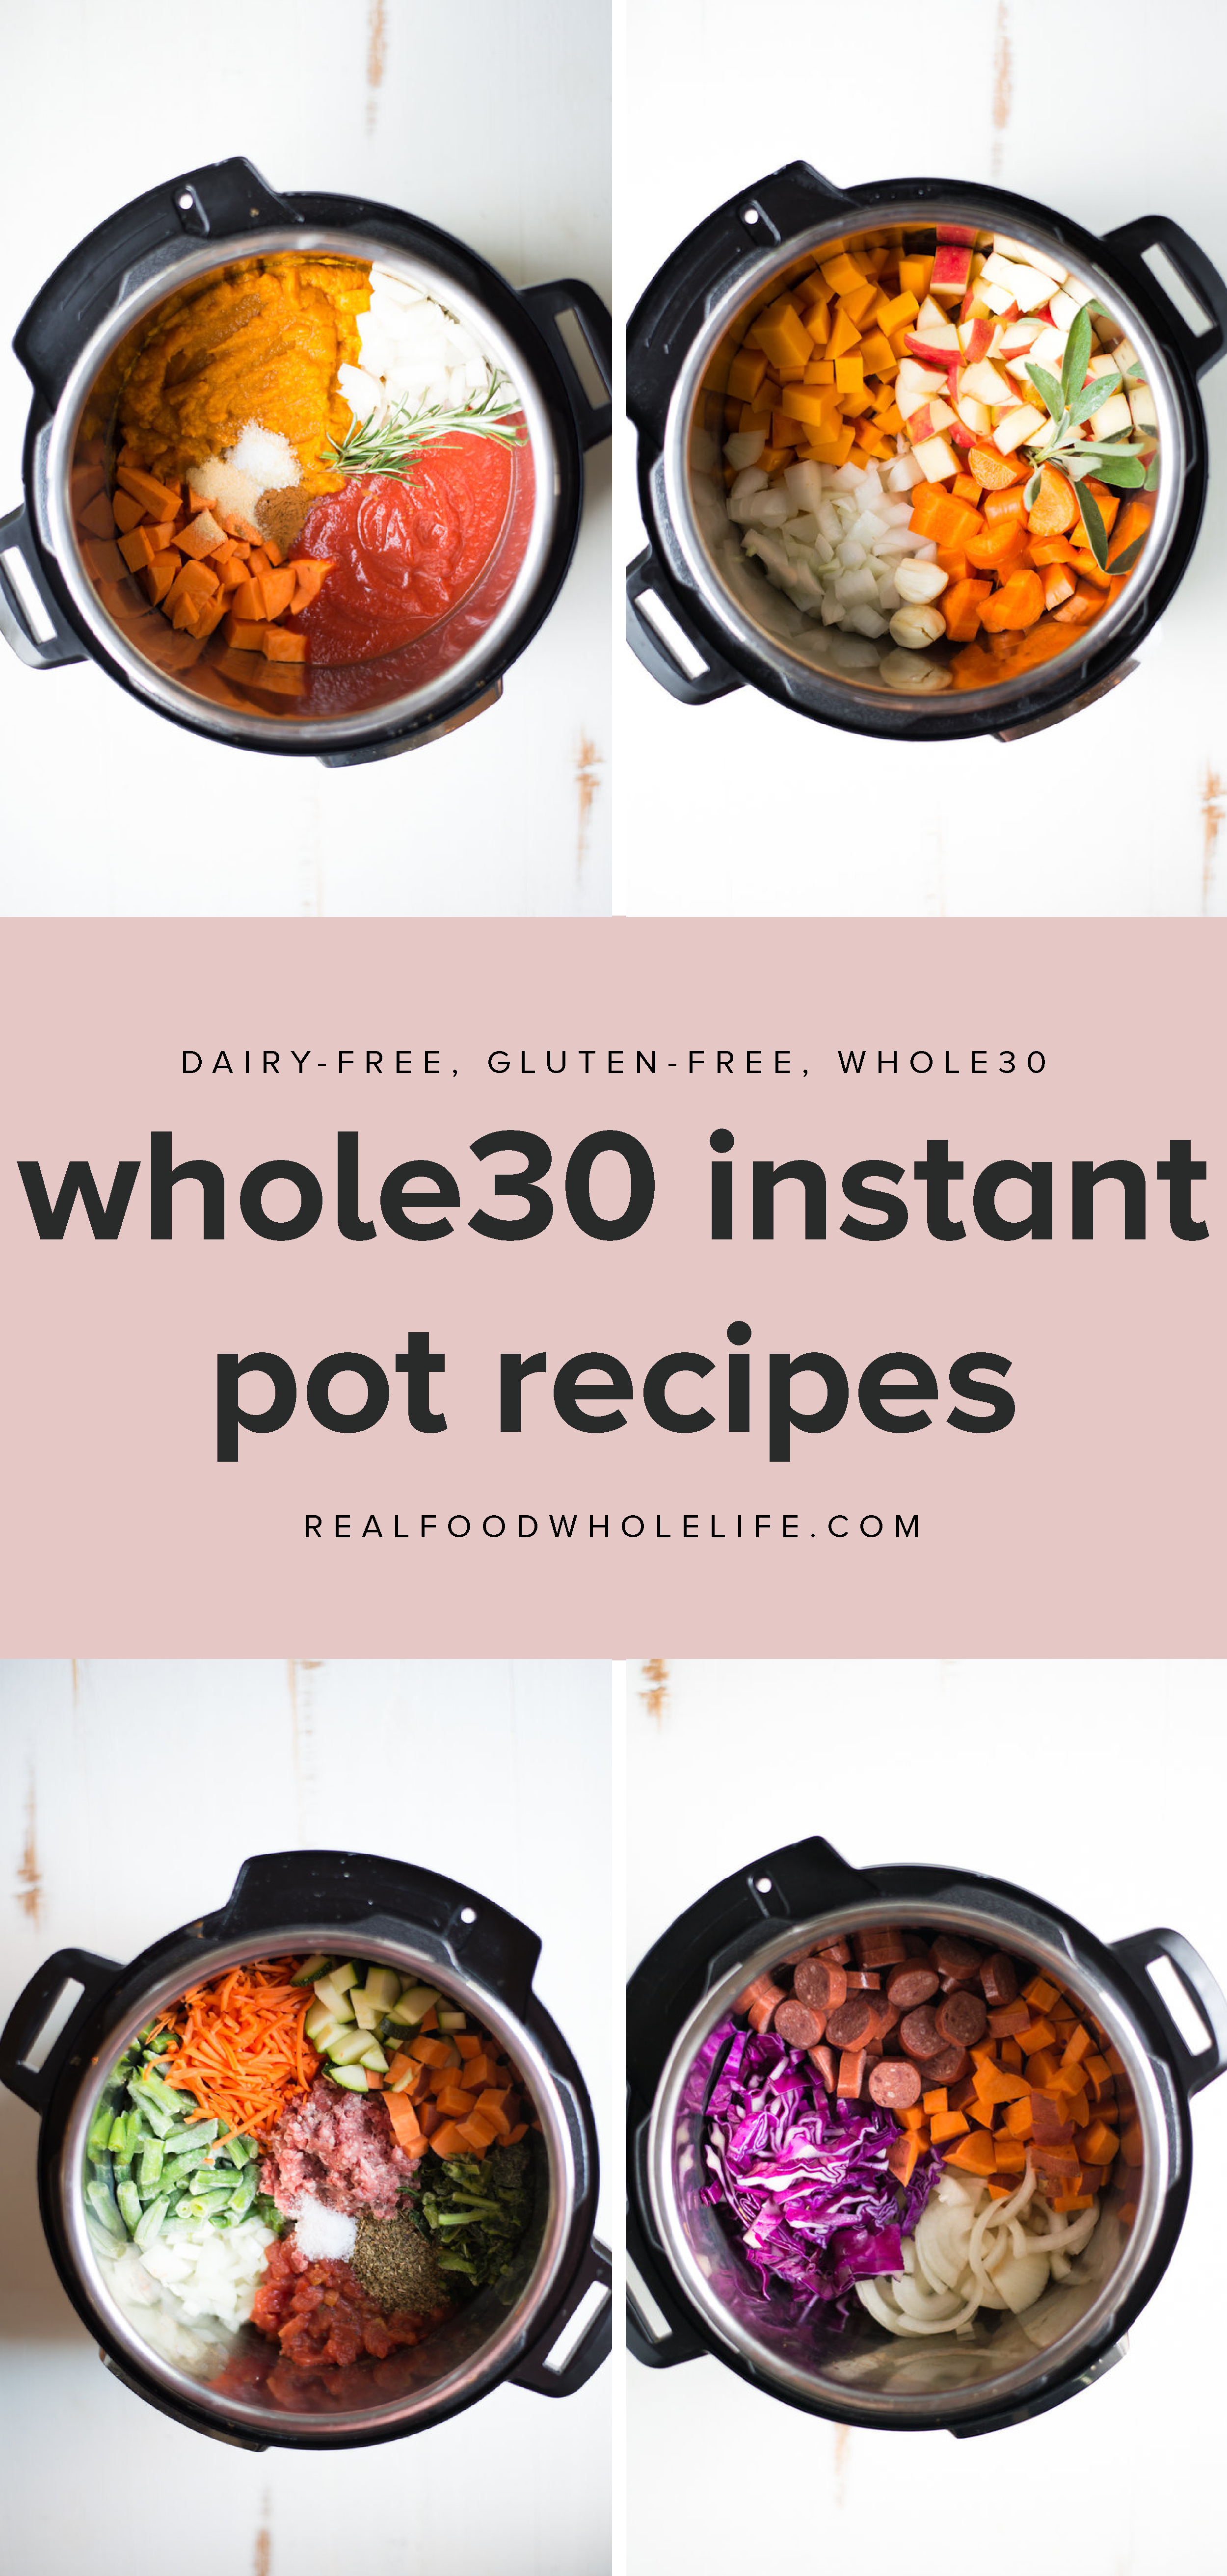 A collection of 16 easy, whole30 Instant Pot recipes.  #realfoodwholelife #recipe #instantpot #whole30 #dairyfree #glutenfree